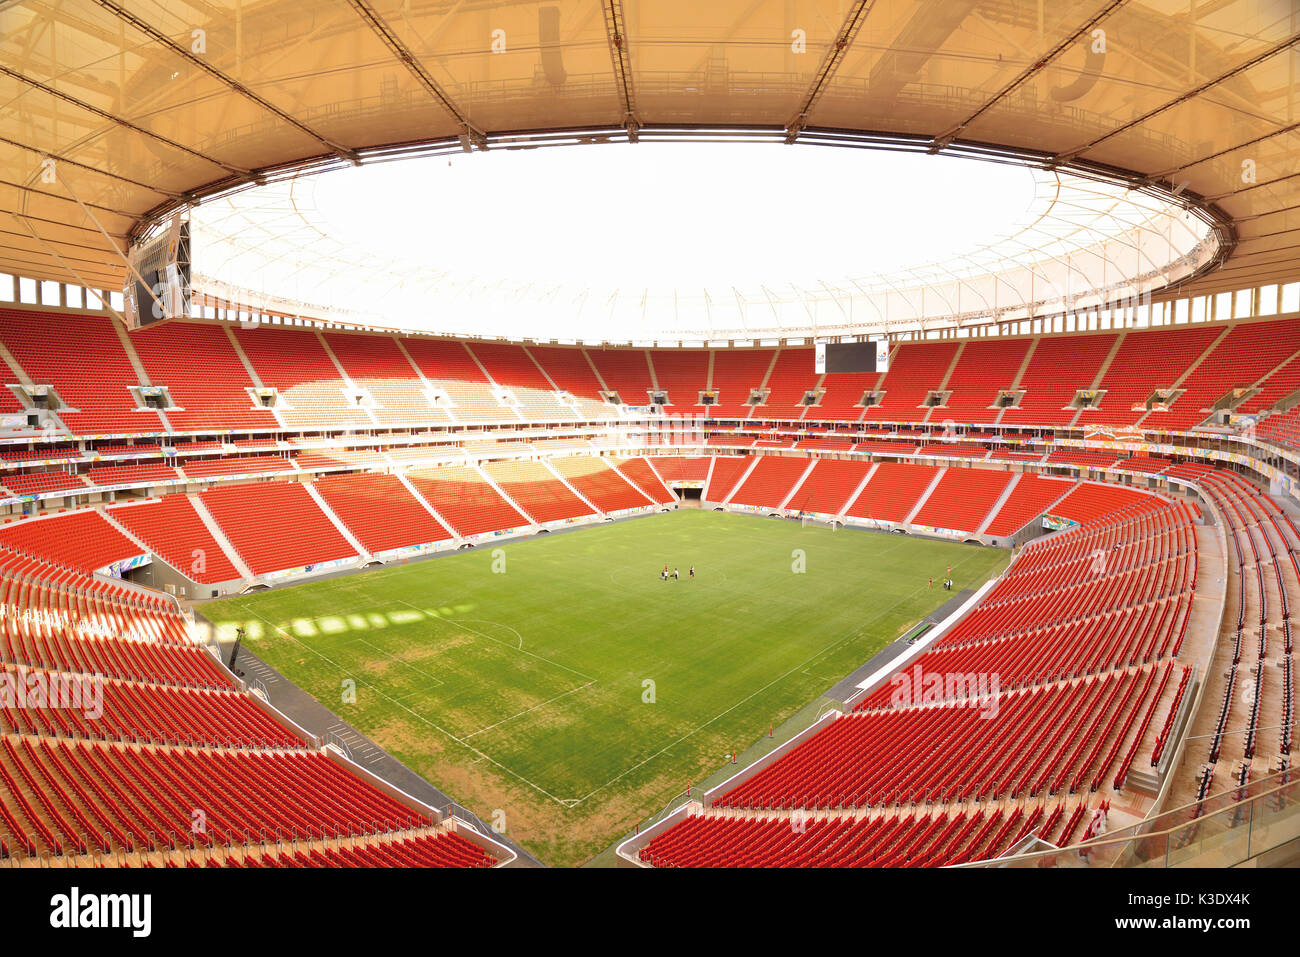 Brazil, Brazil, interior view from the world championship stadium of Estadio Nacional de Brazil, former stadium of Mané Garrincha with a capacity of 70.064 seats, - Stock Image